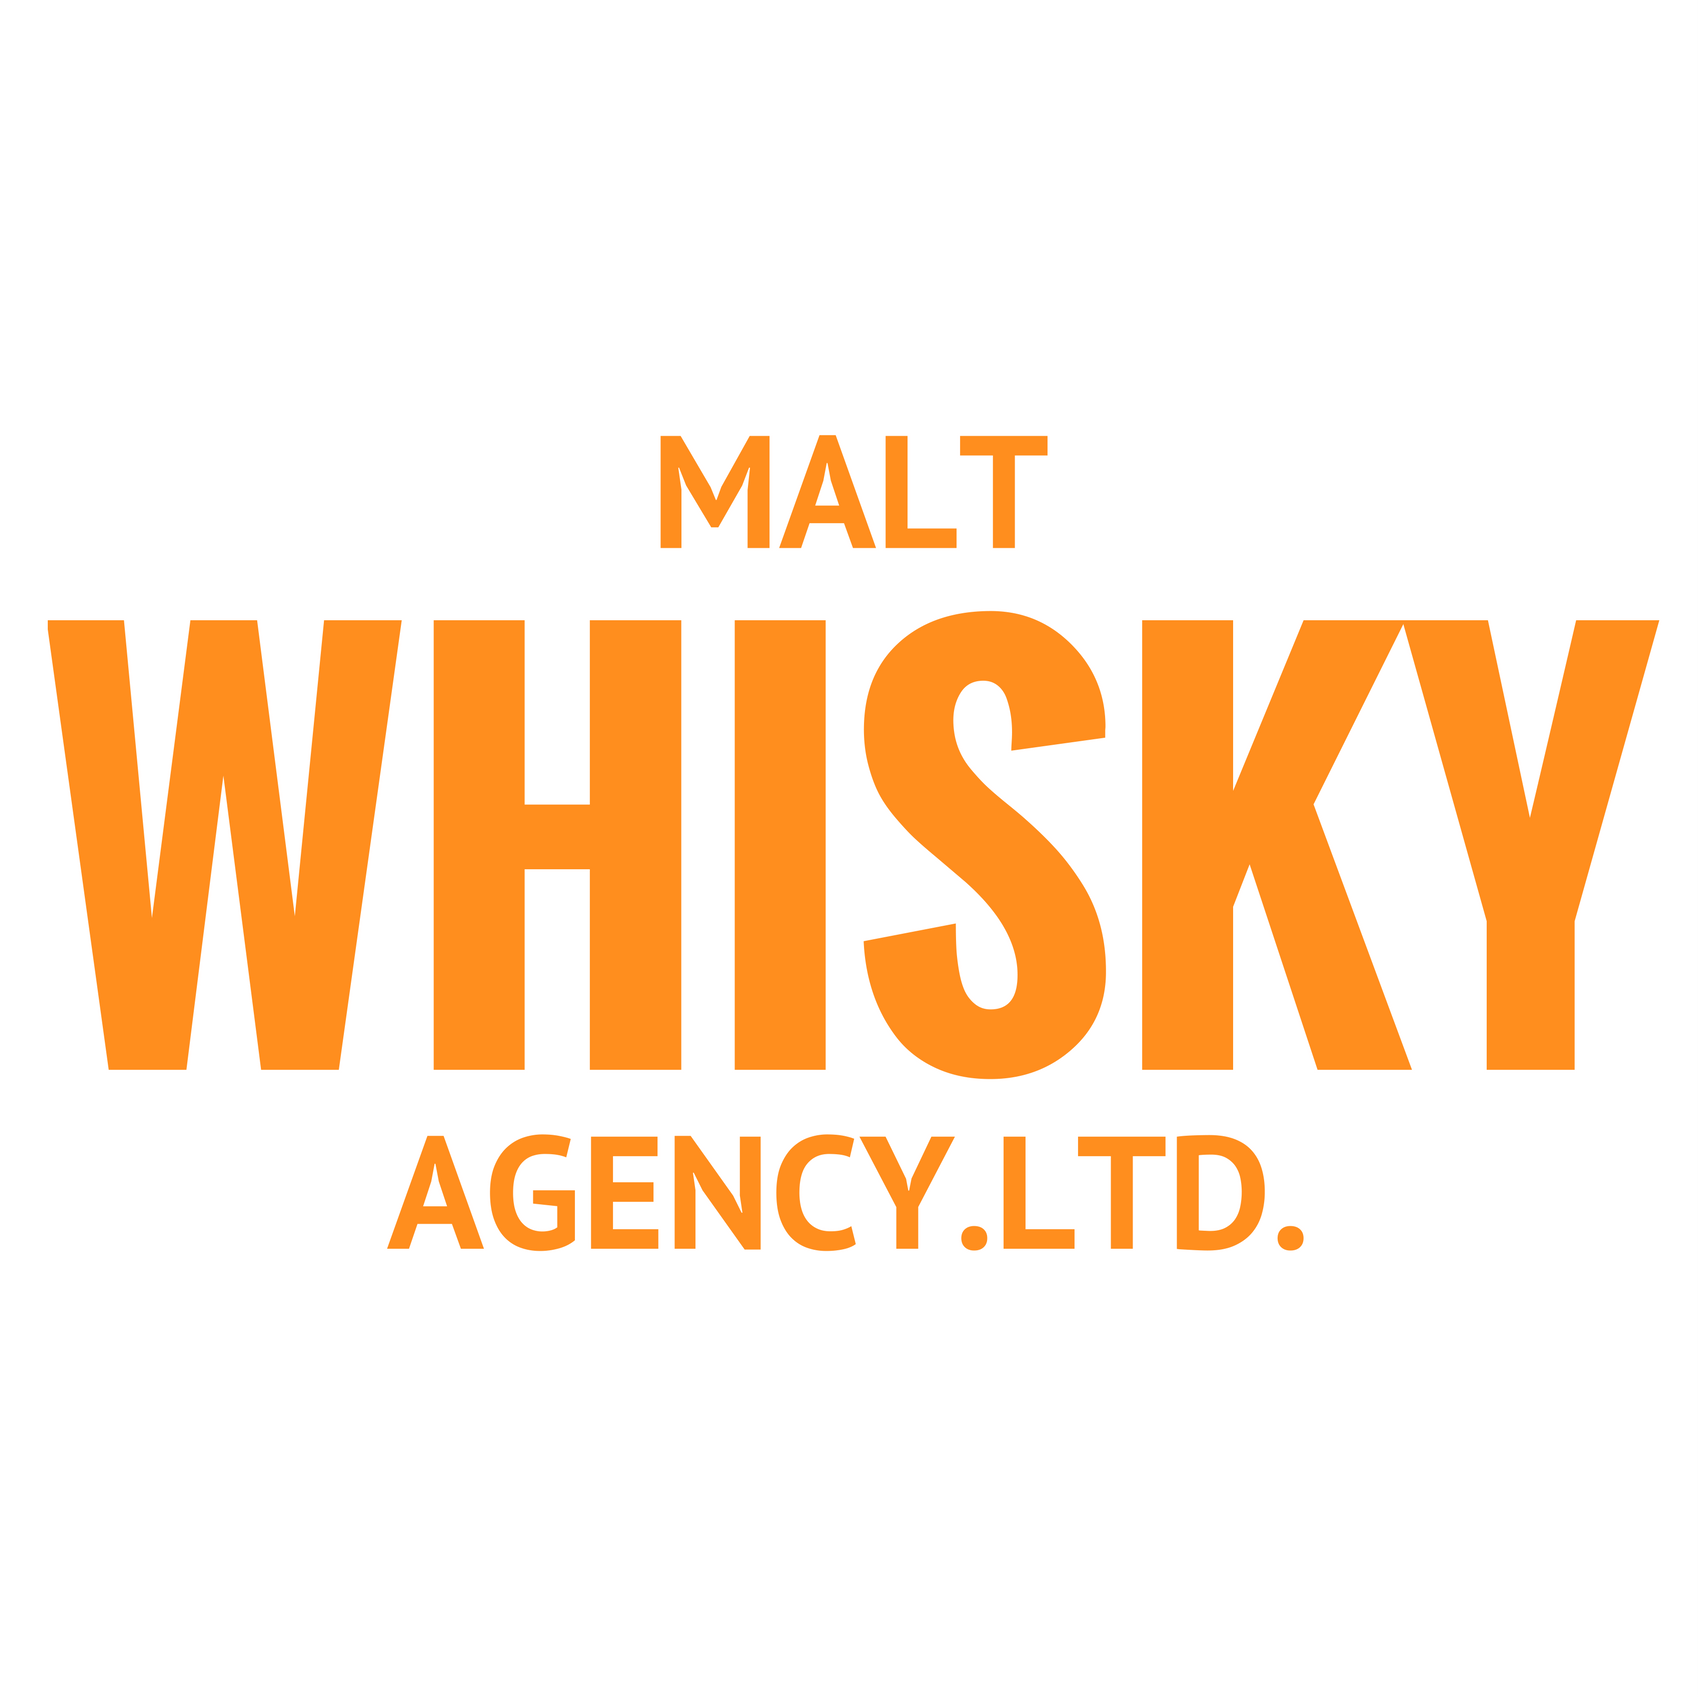 Malt Whisky Agency Ltd - Malt Whisky